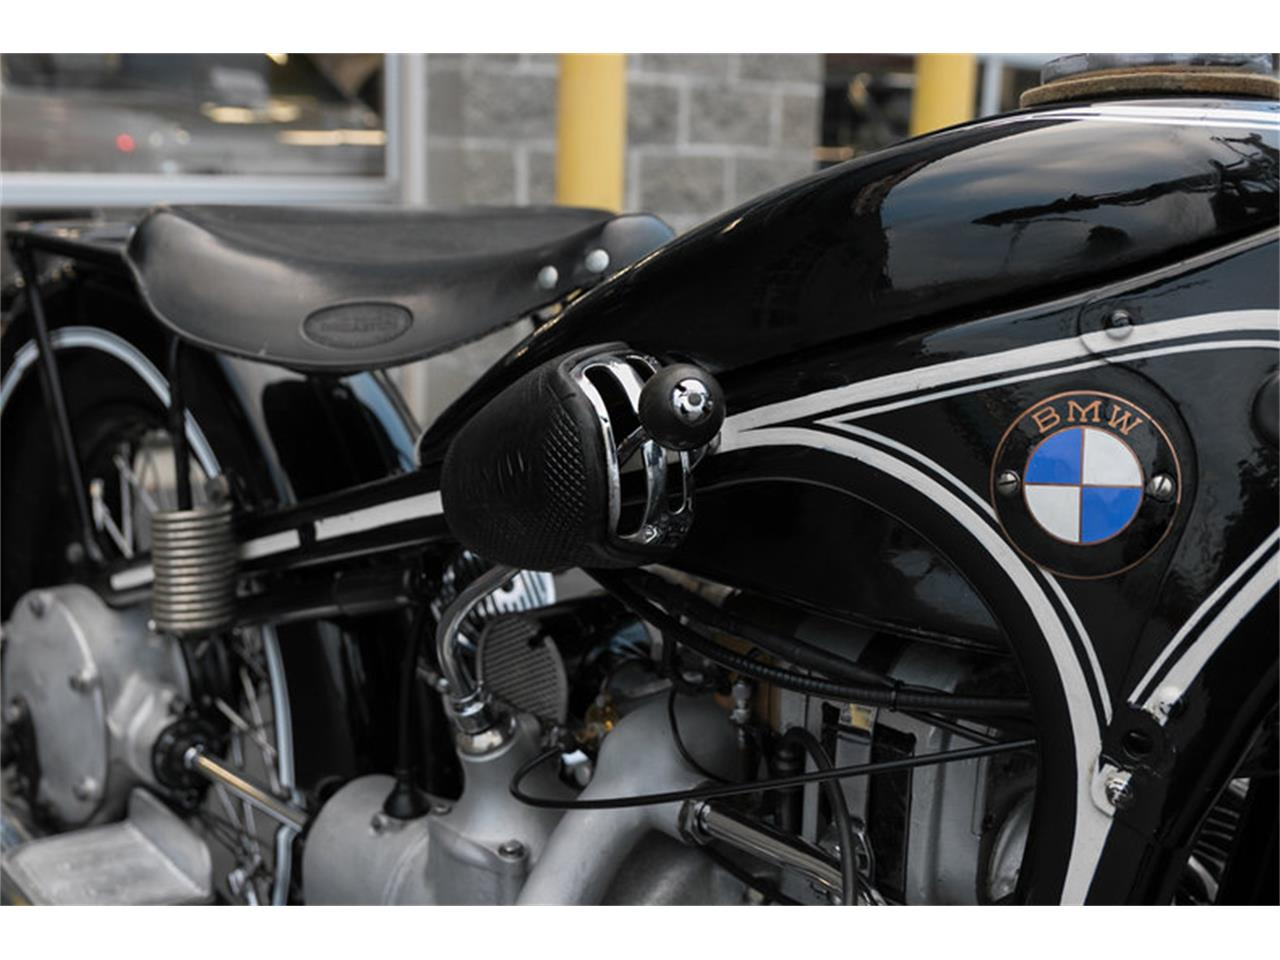 1939 BMW Motorcycle (CC-1058802) for sale in St. Charles, Missouri